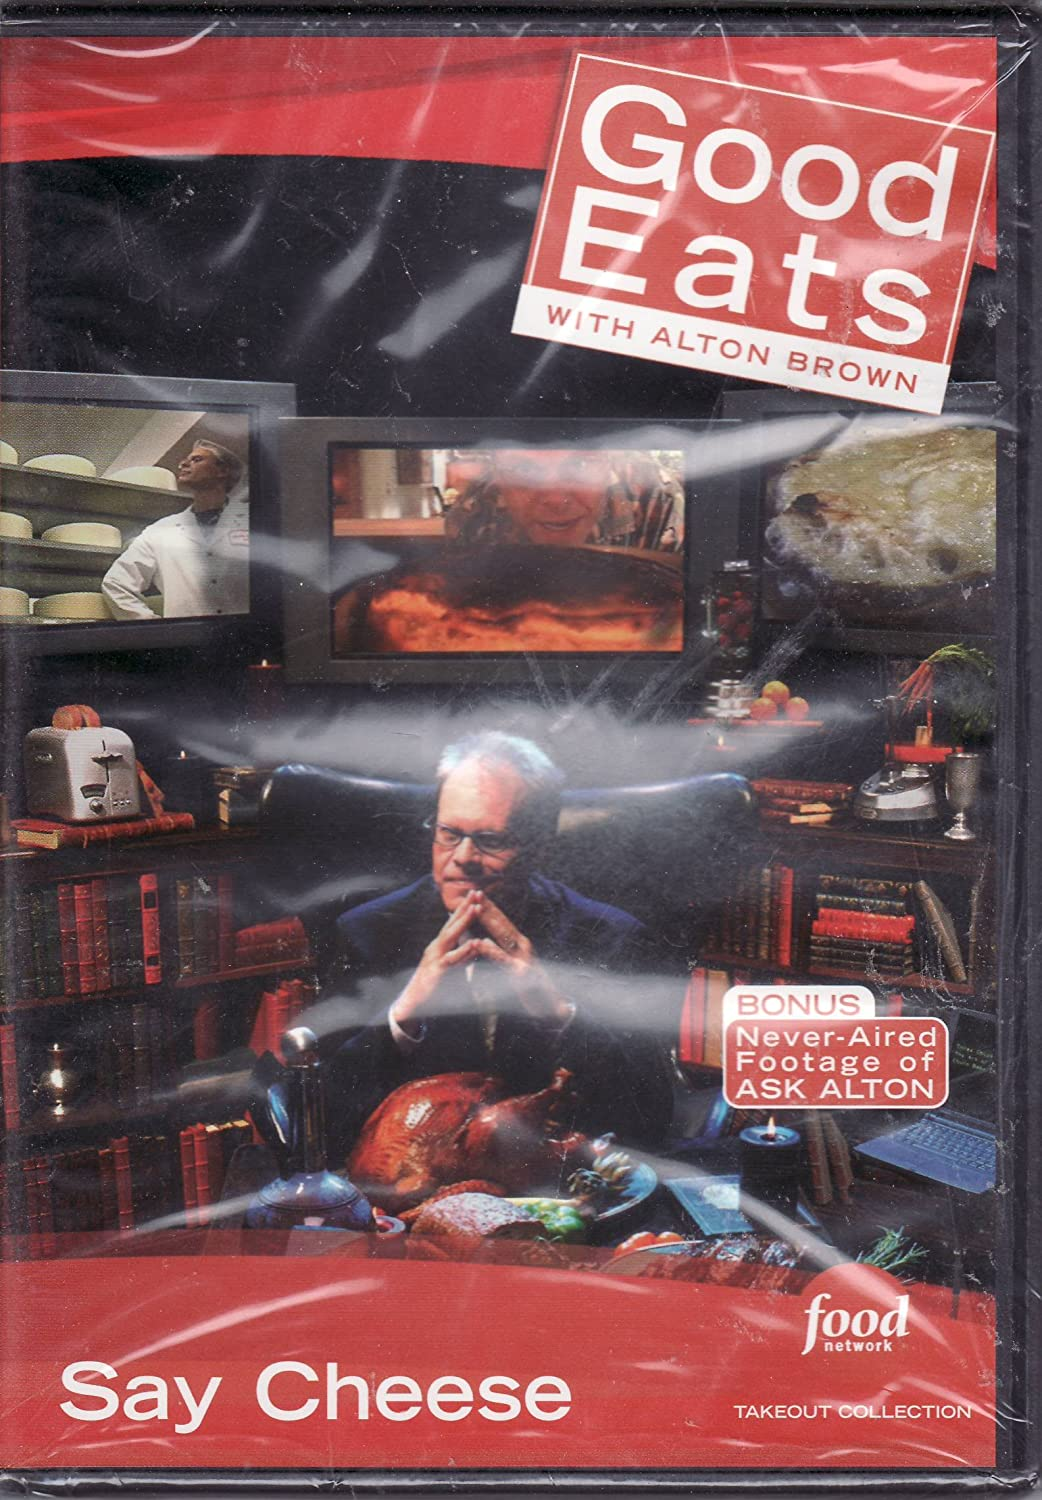 Food Network Takeout Collection DVD - Good Eats With Alton Brown - Say Cheese - Includes BONUS FOOTAGE Plus For Whom The Cheese Melts Grilled Cheese / Egg Files 5 Cheese Souffle / A Bowl of Onion Soup